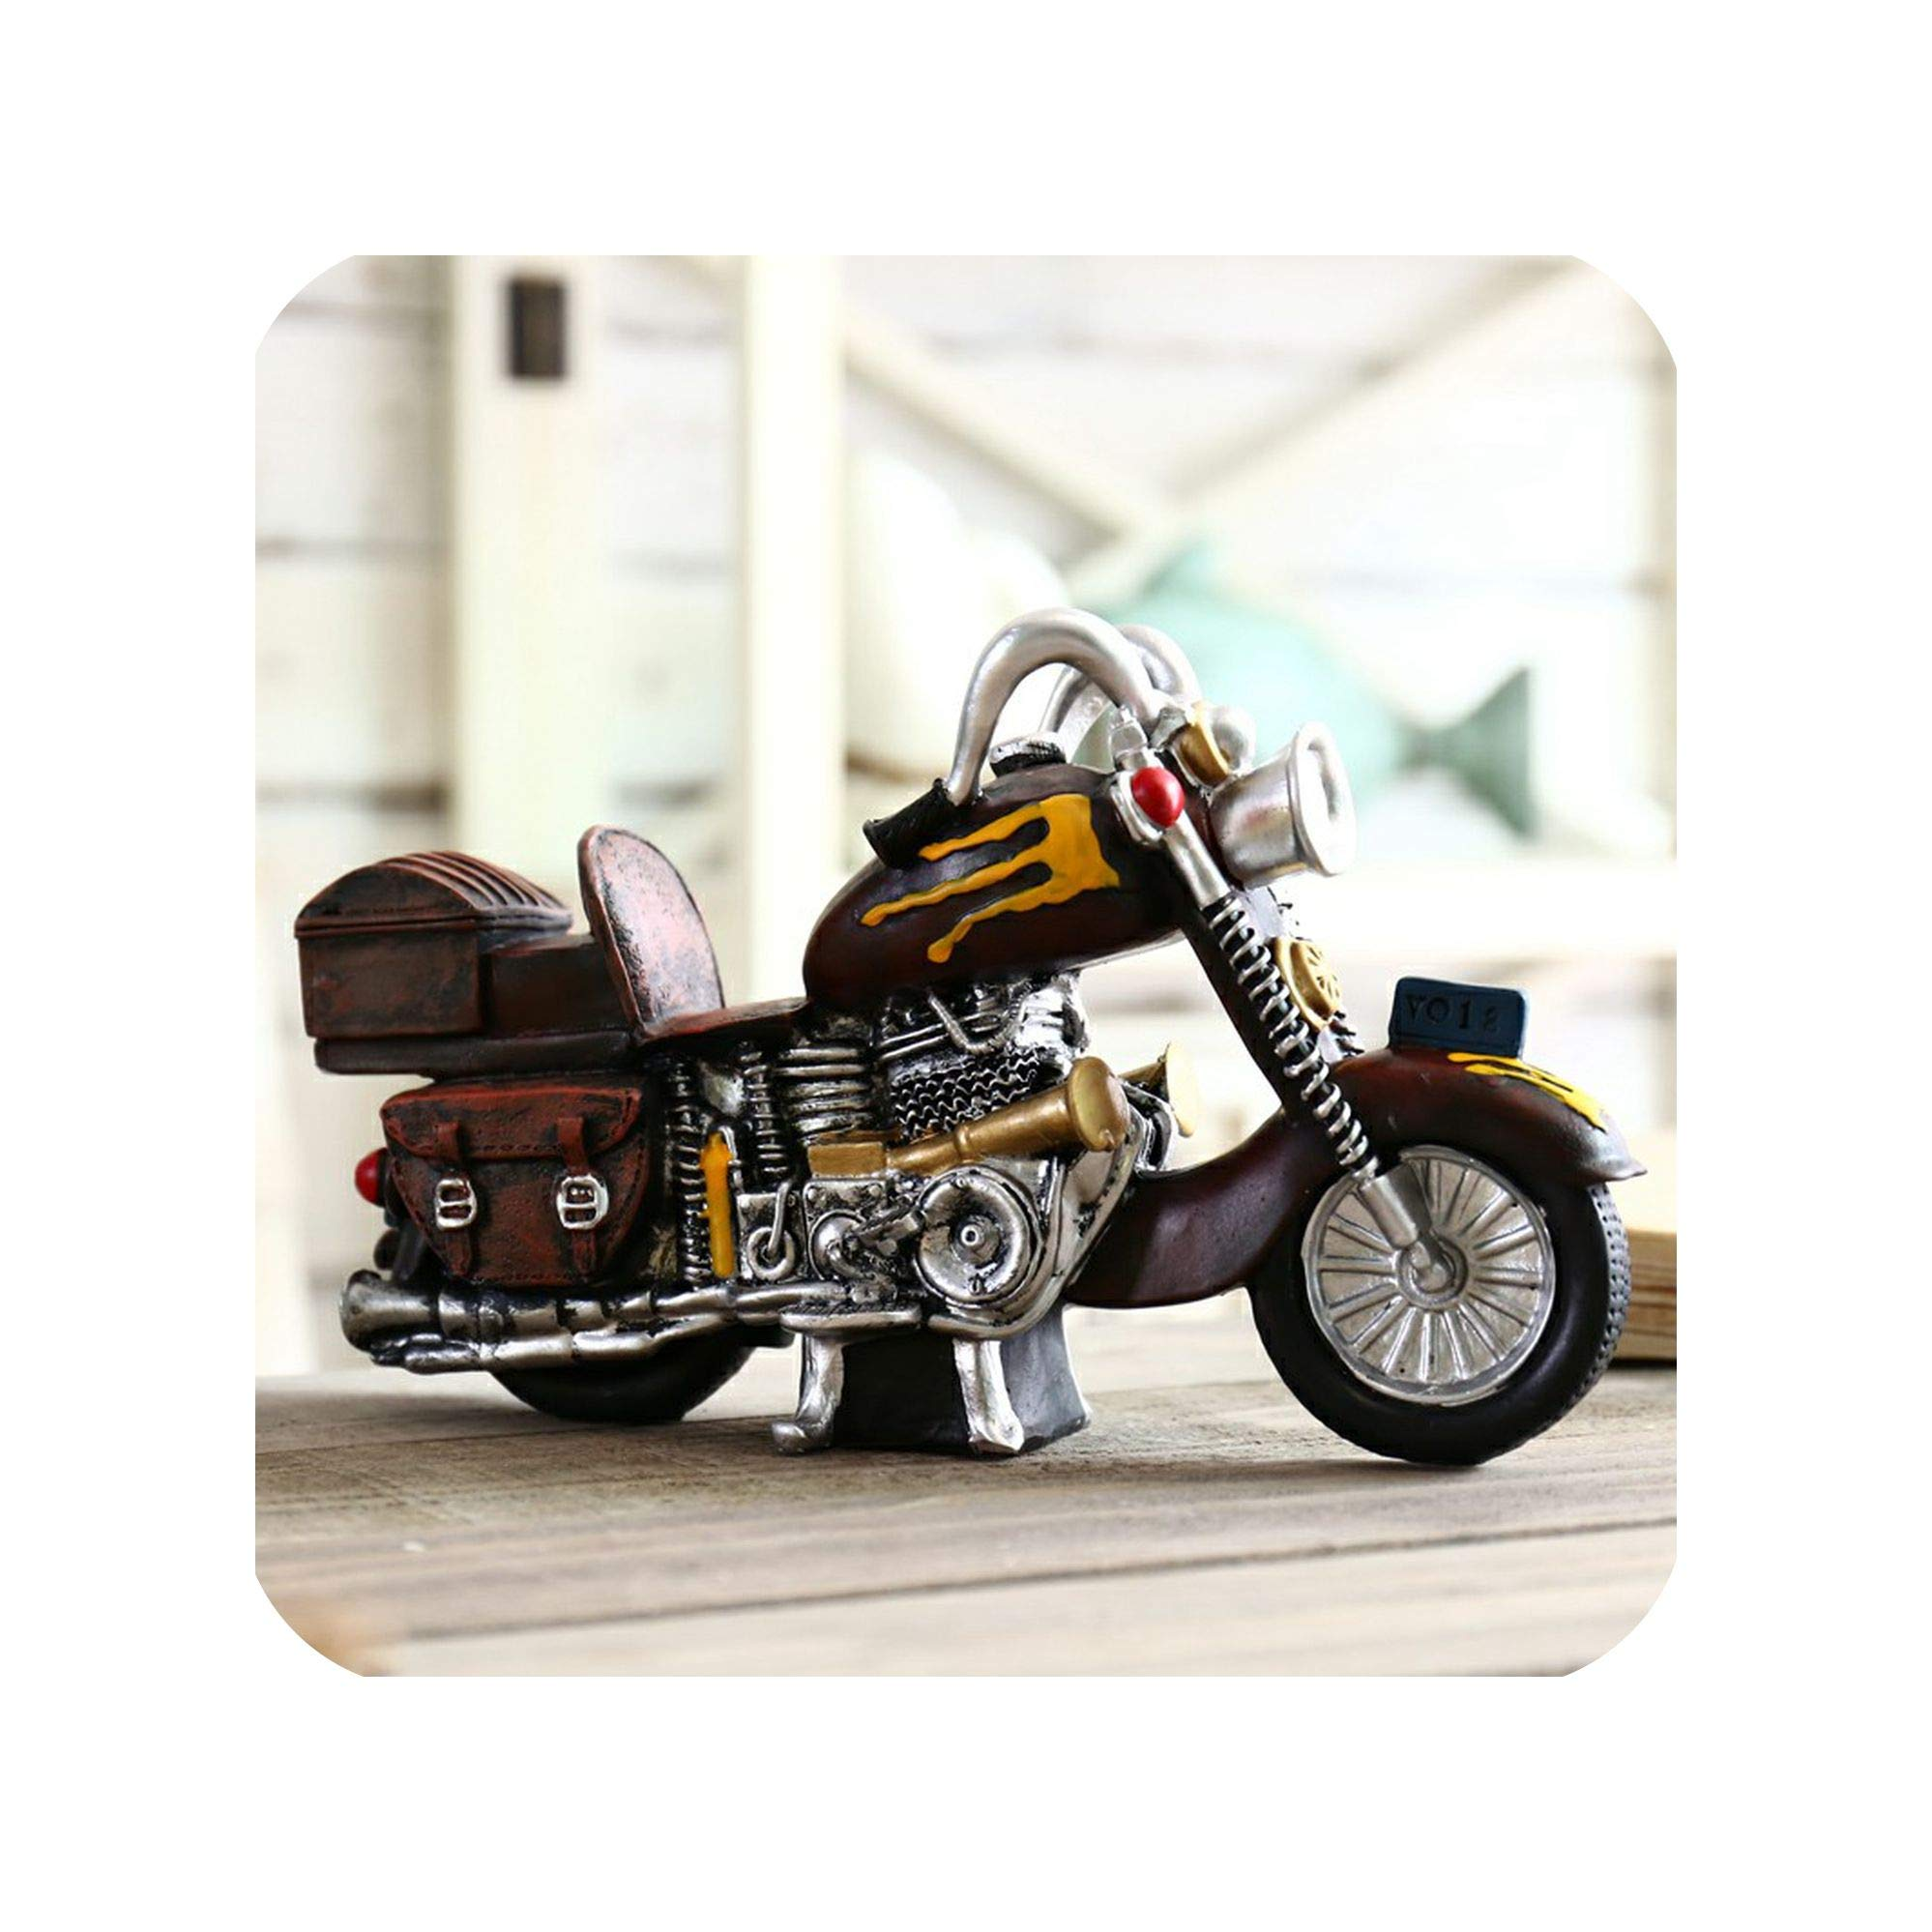 Fun Thing New Year Gift Motorcycle Figurine Piggy Bank Money Box Metal Coin Box Saving Box Home Decoration Crafts Gift for Kid,Motor Money Box Y by NA